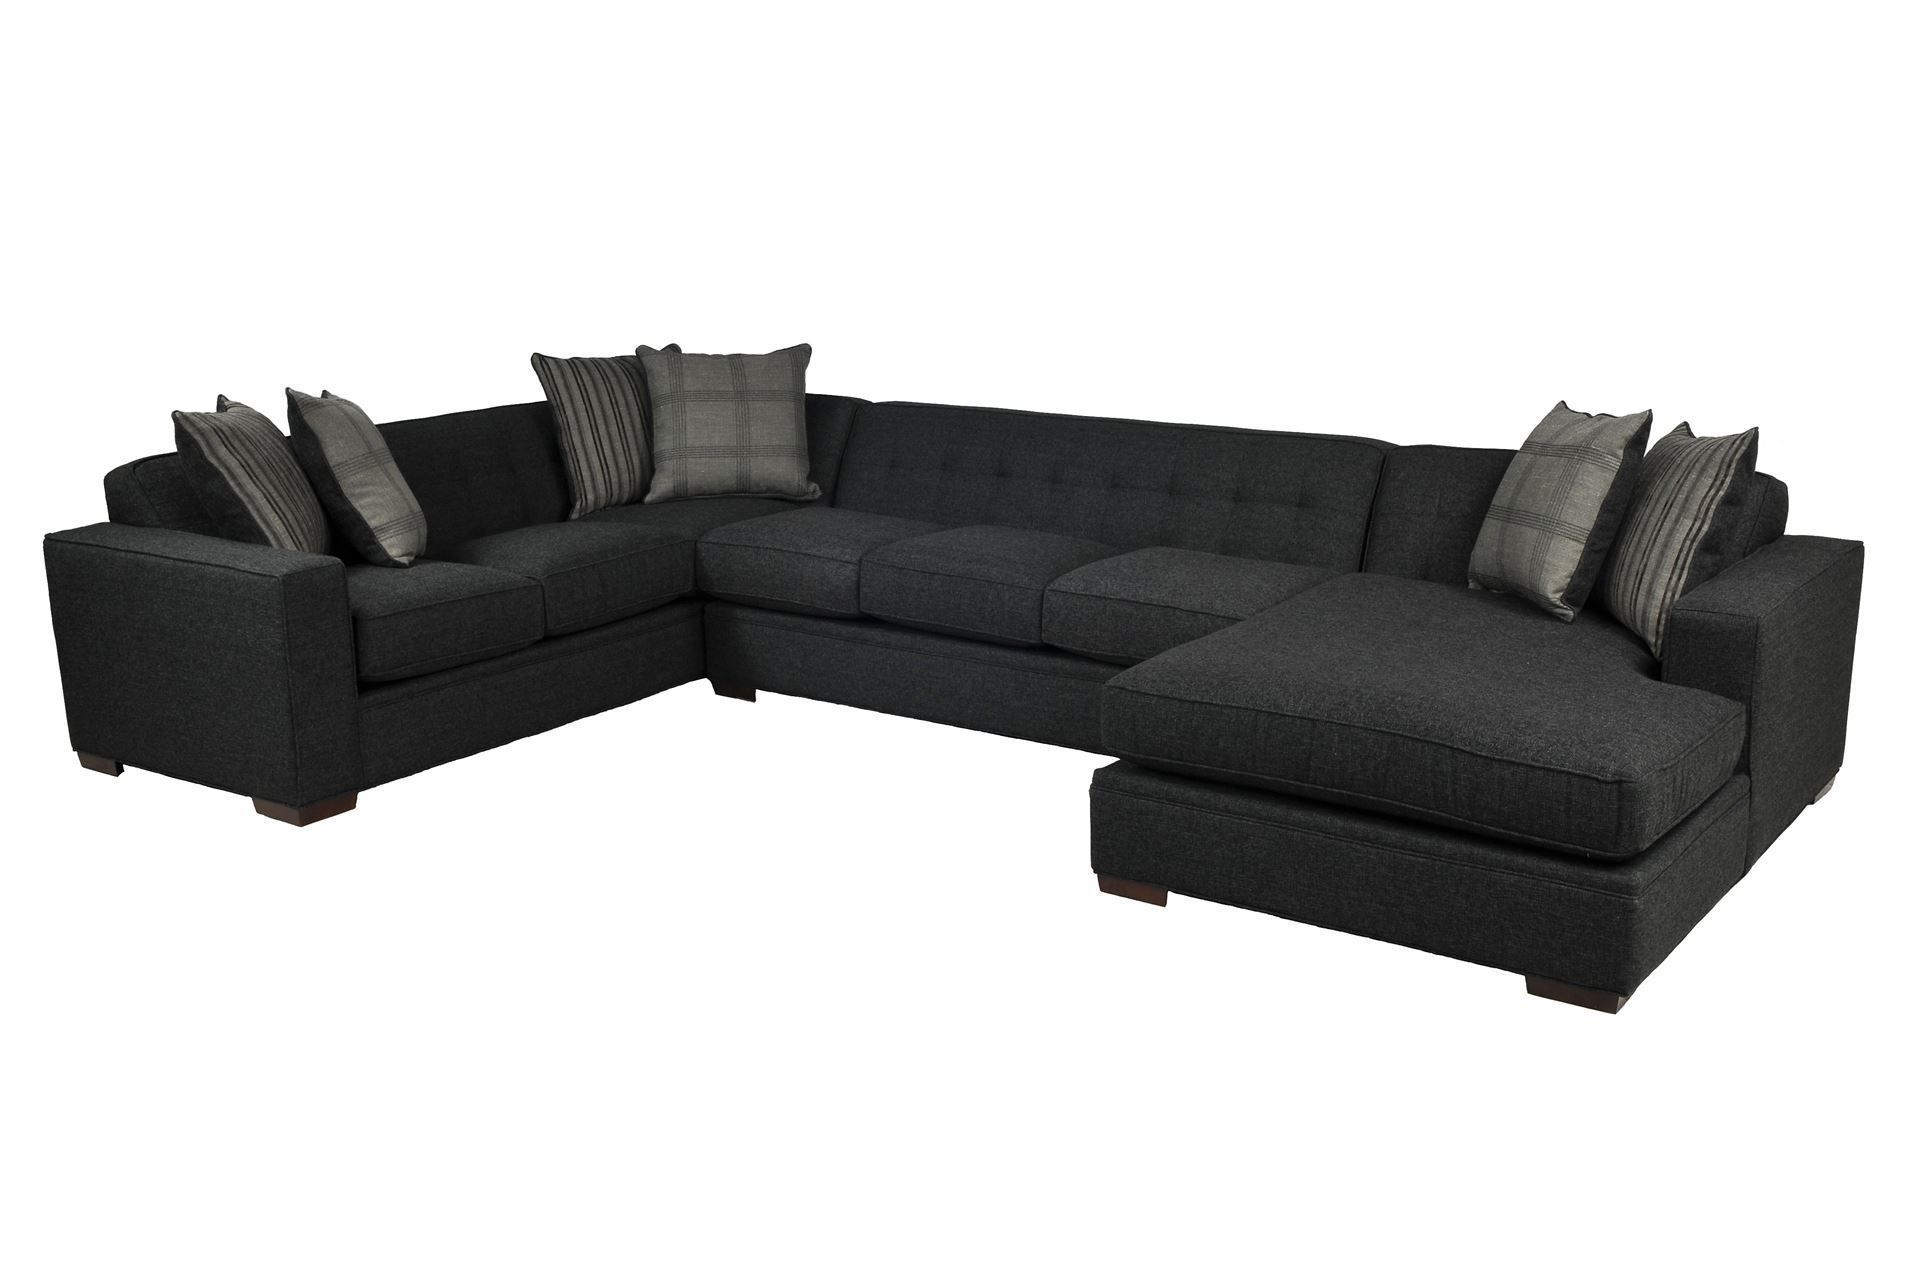 Costello 3 Piece Sectional - love this dark slate color and the fact that there's room for 2 adults to REALLY stretch out and get comfortable.